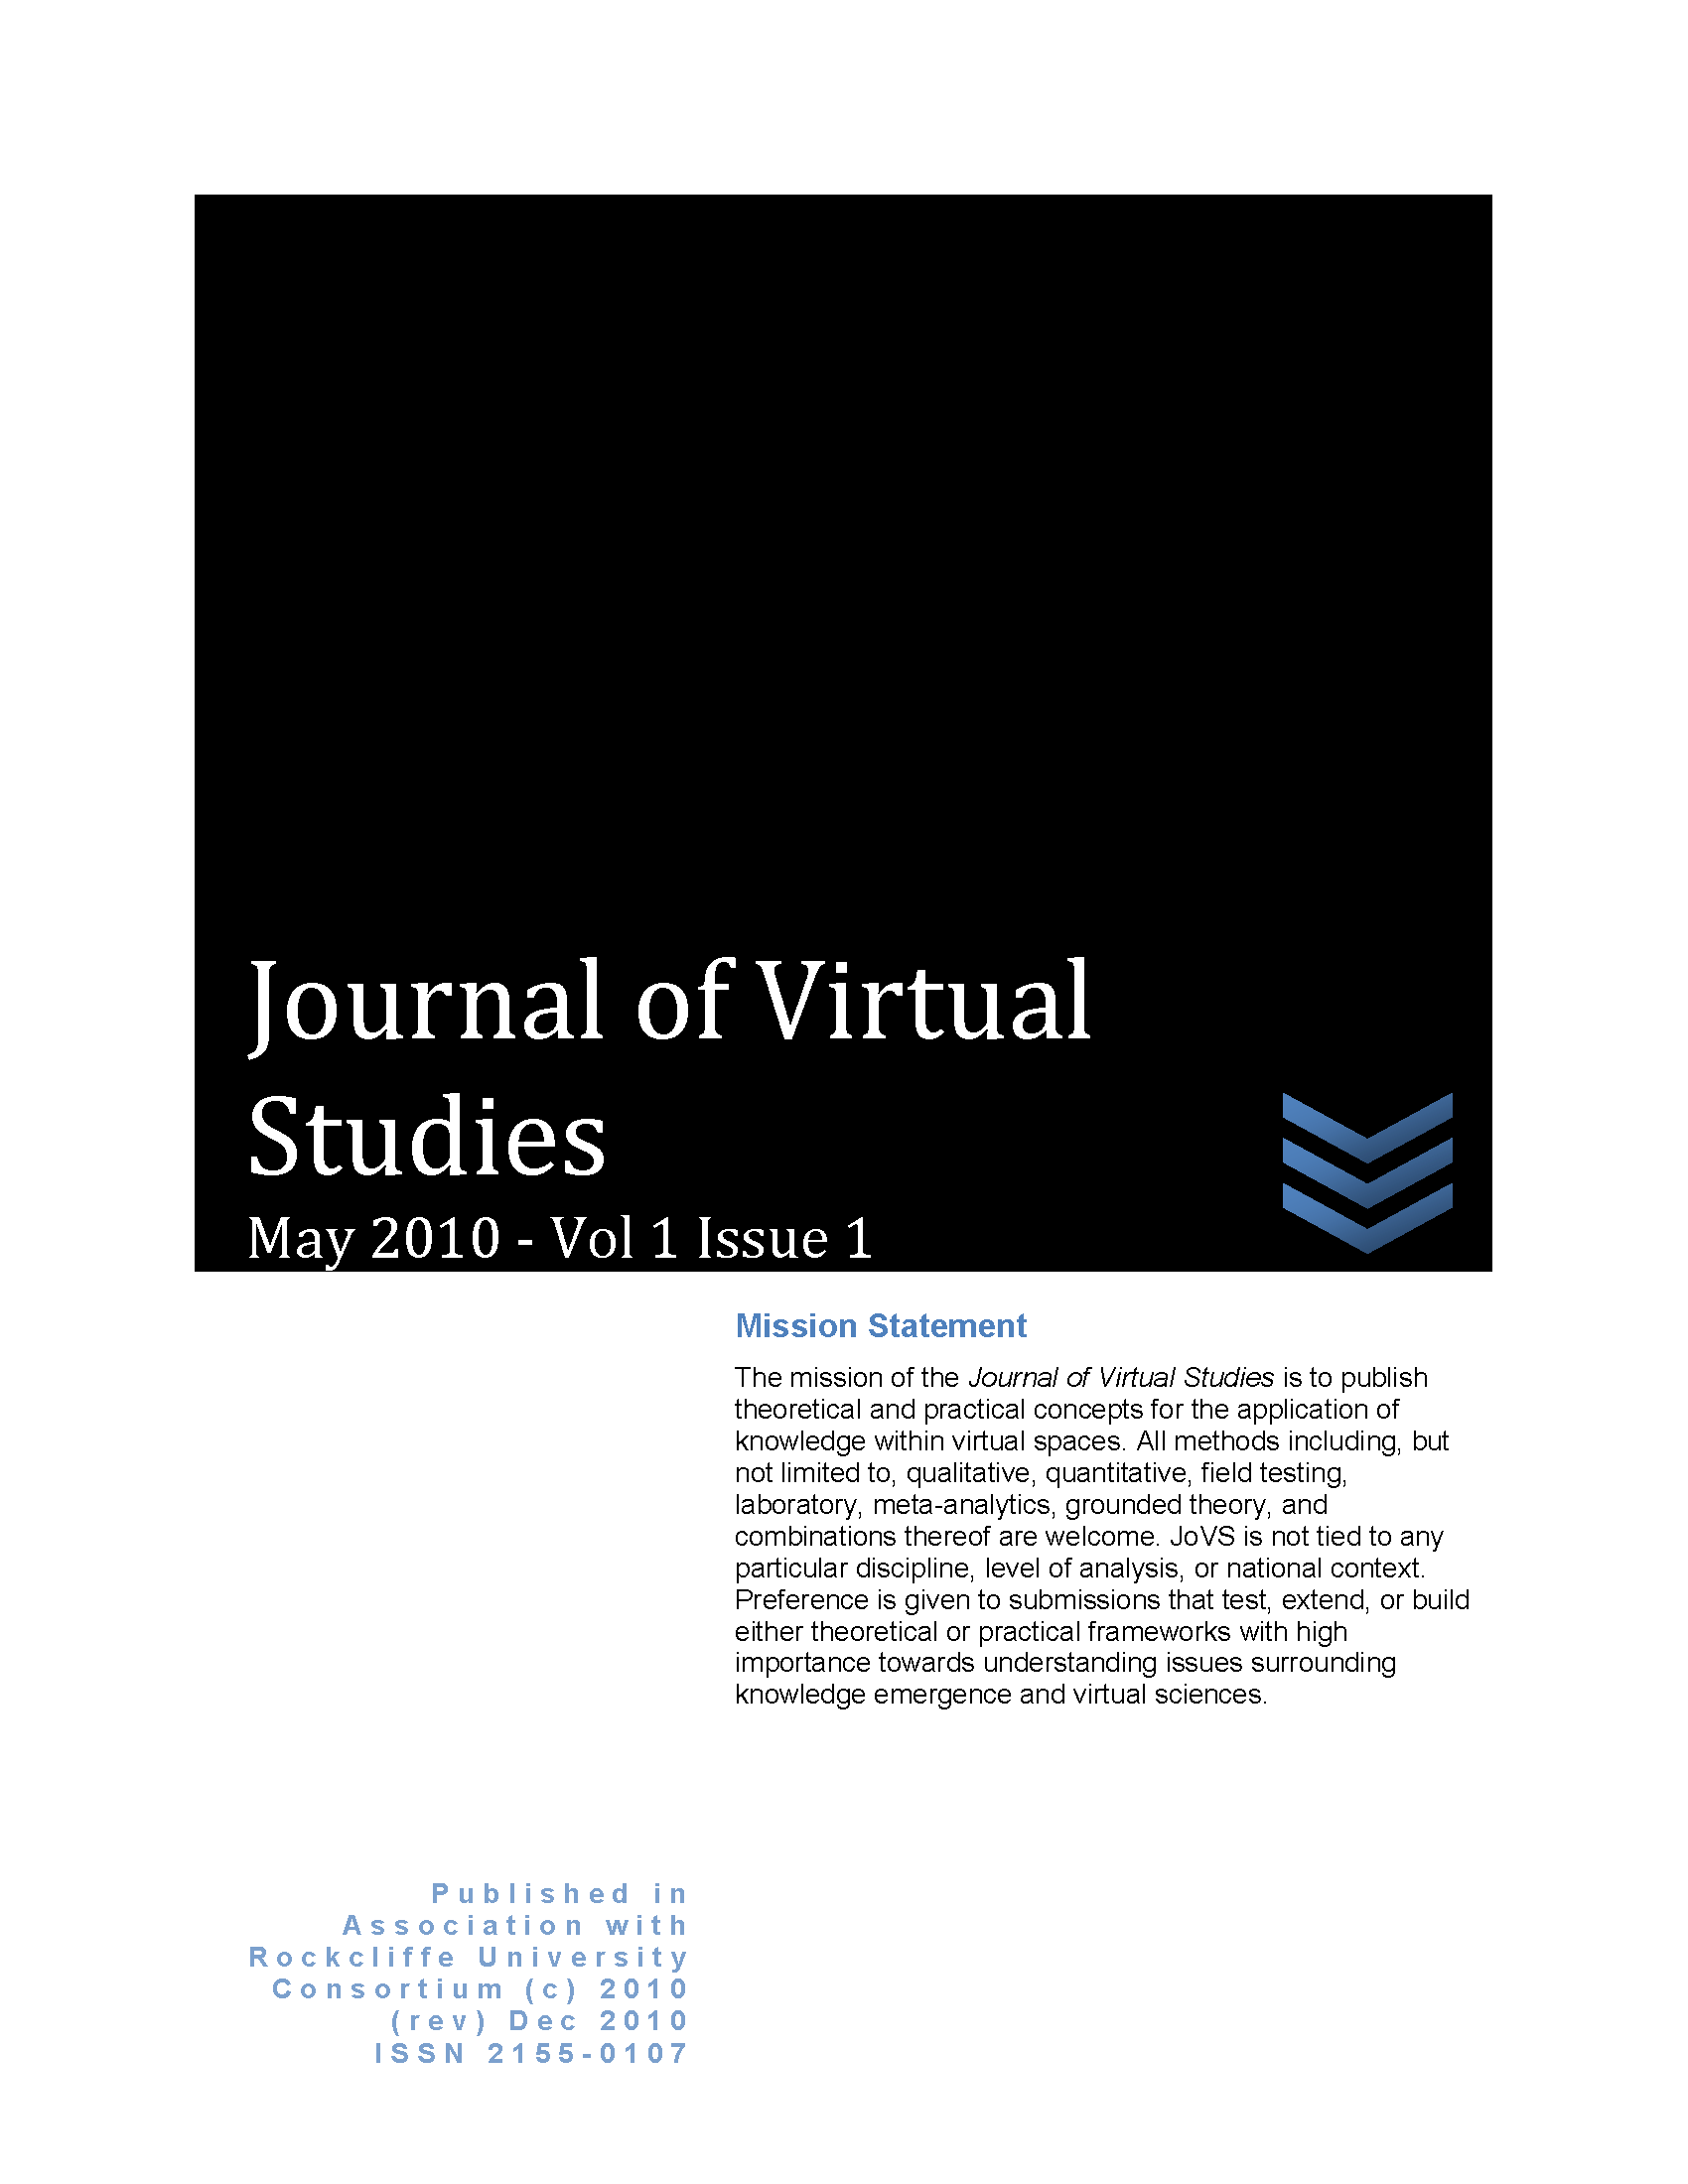 JoVS Volume 1 Issue 1